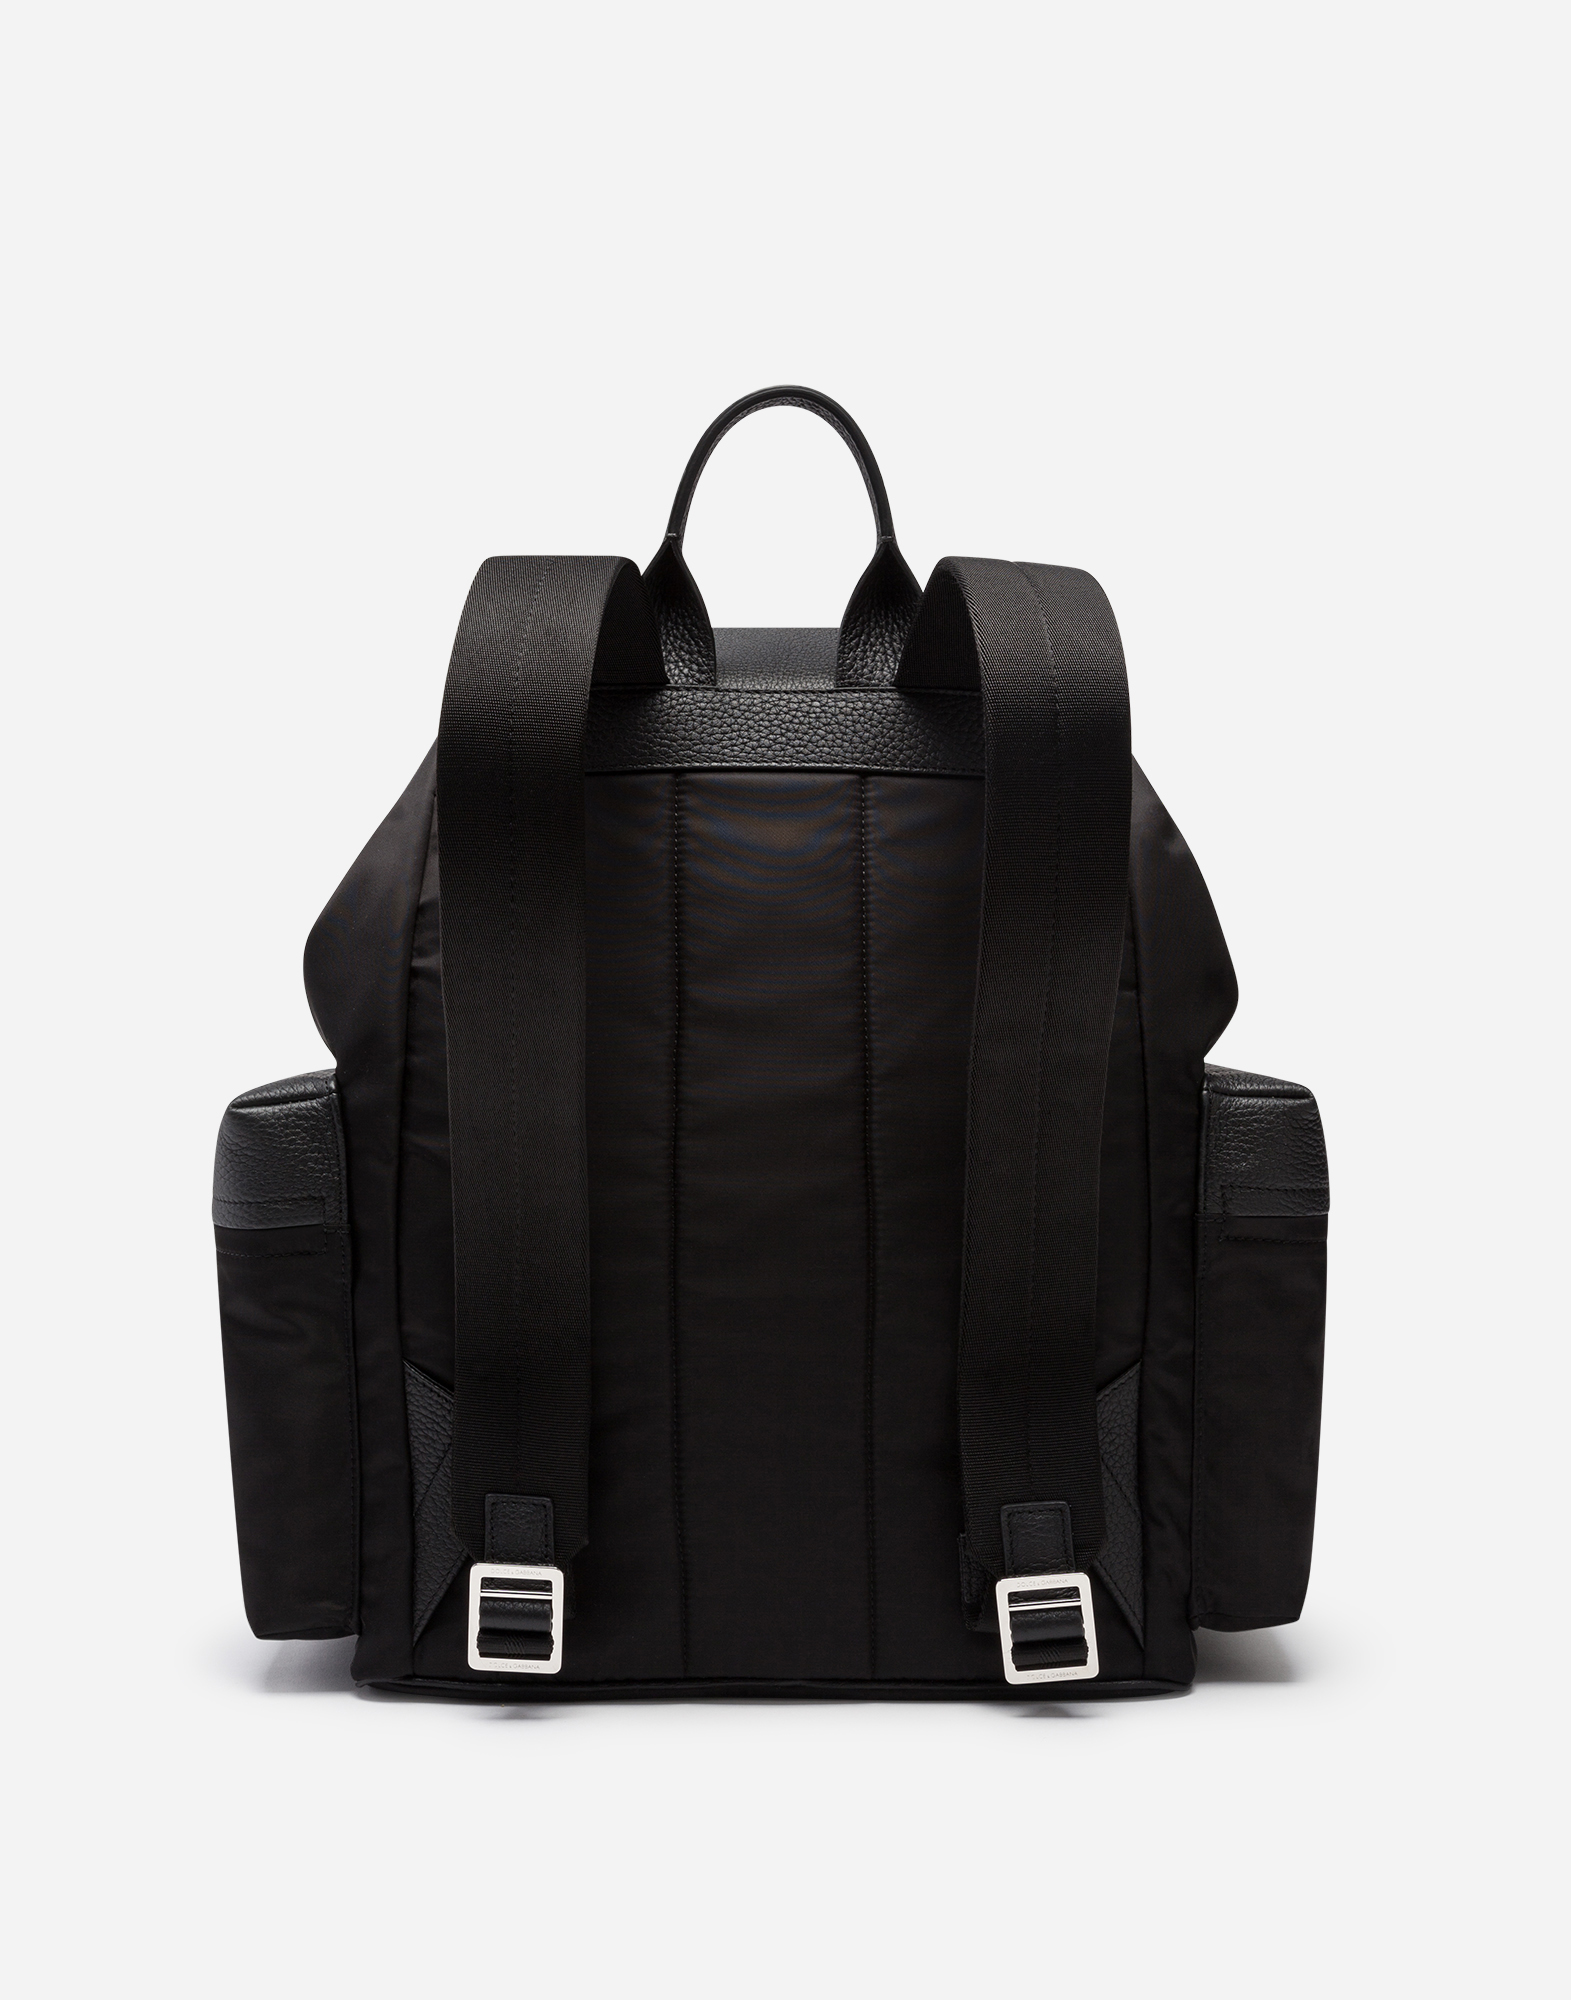 Dolce&Gabbana BACKPACK IN MIXED MATERIALS